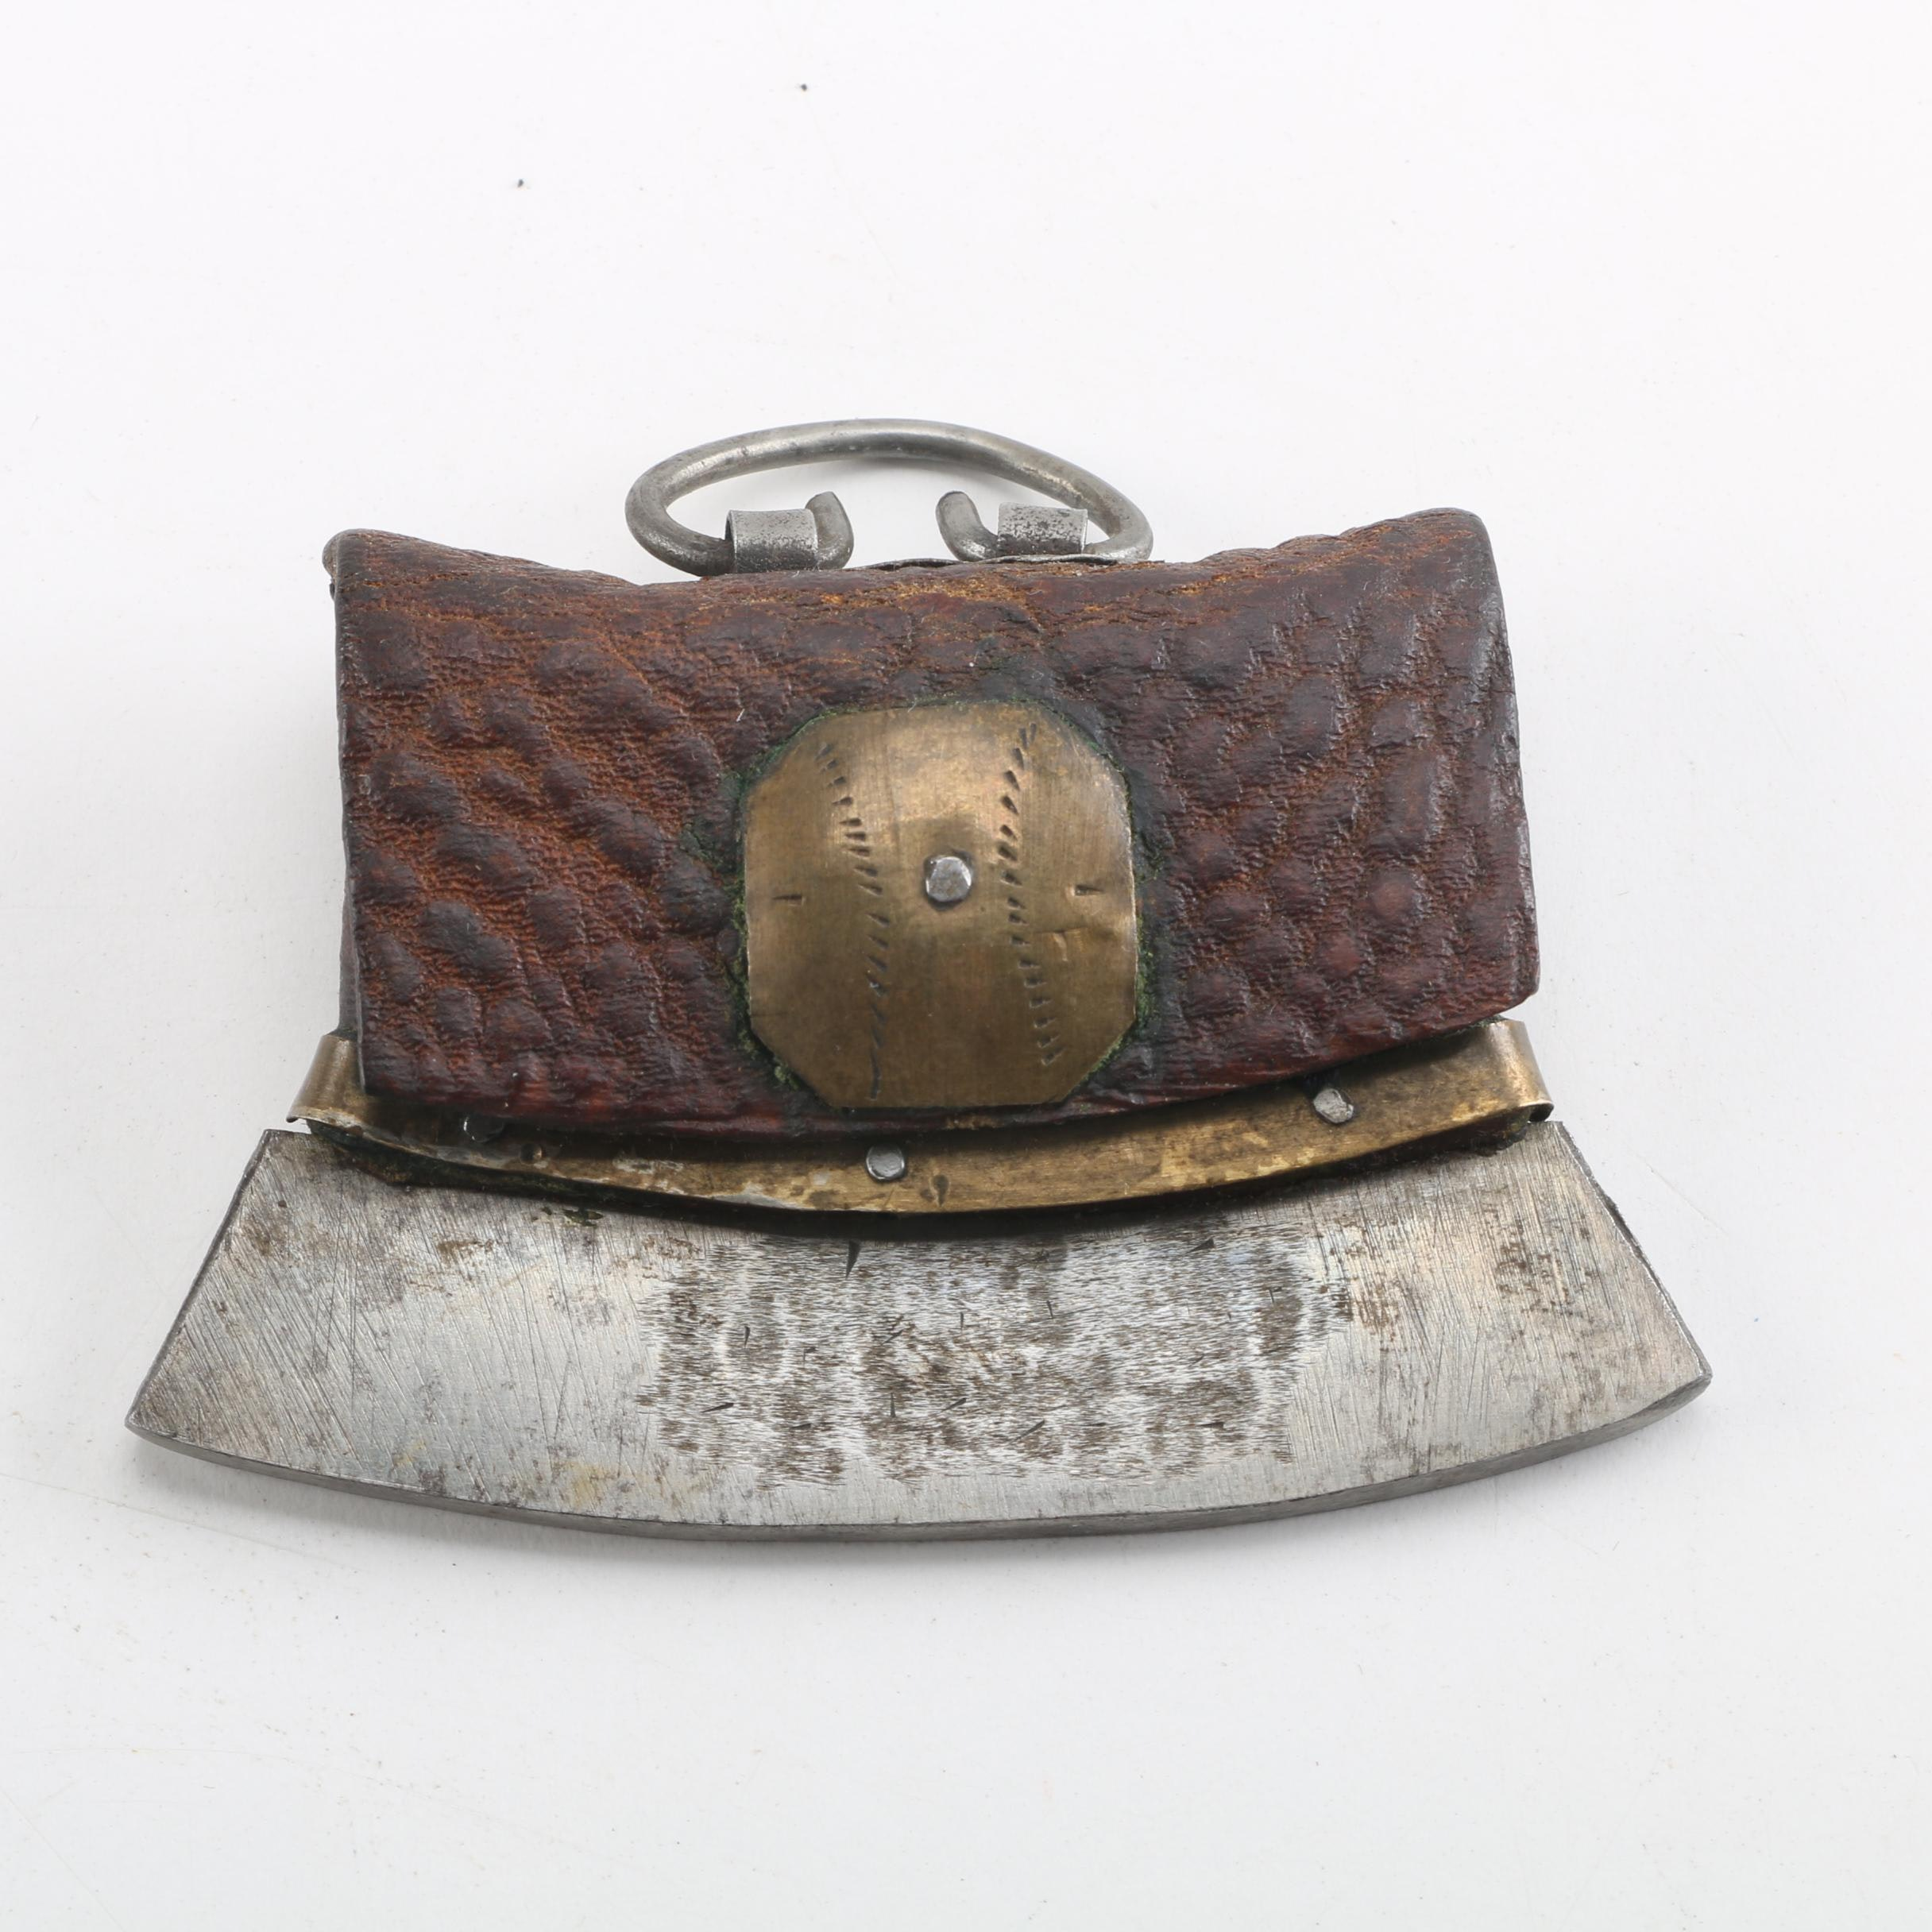 Antique Japanese Tobacco Pouch with Cutter